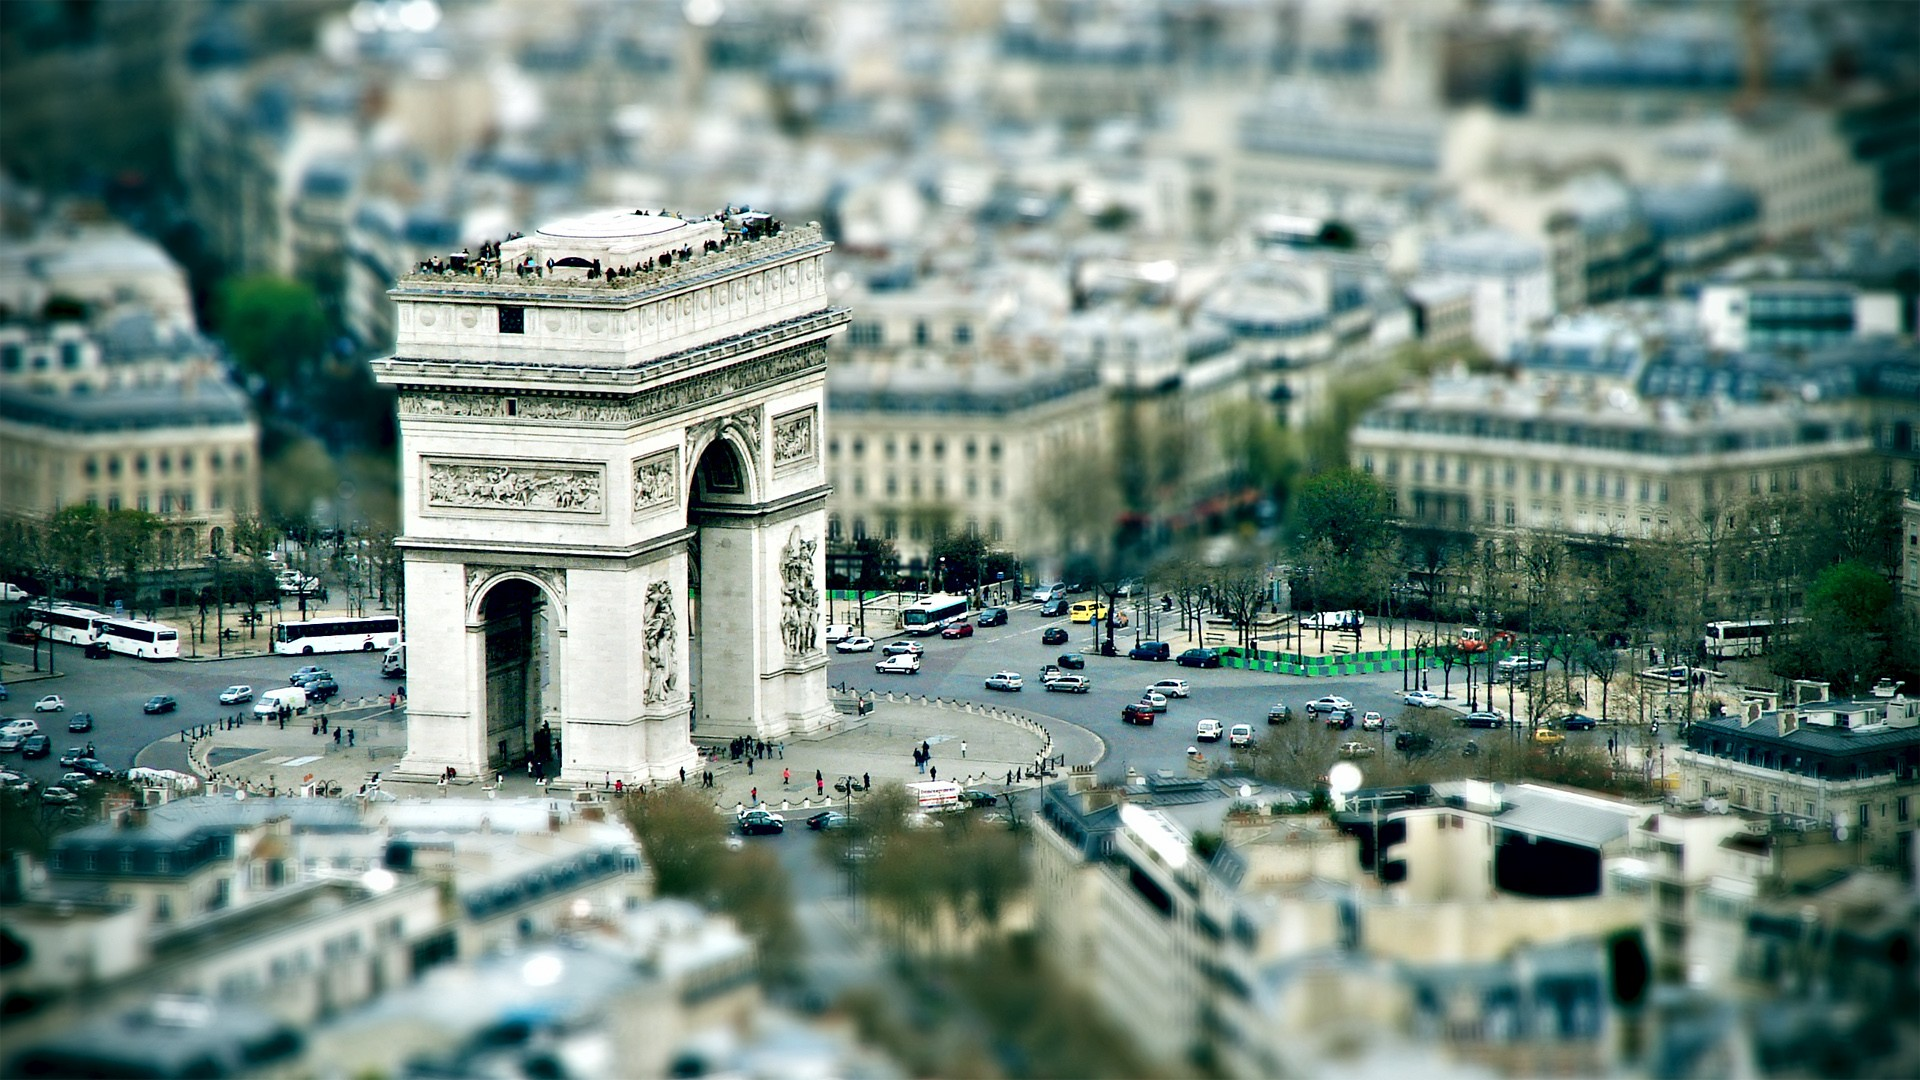 arc de triomphe paris tilt shift city photo wide hd wallpaper is a lovely background.